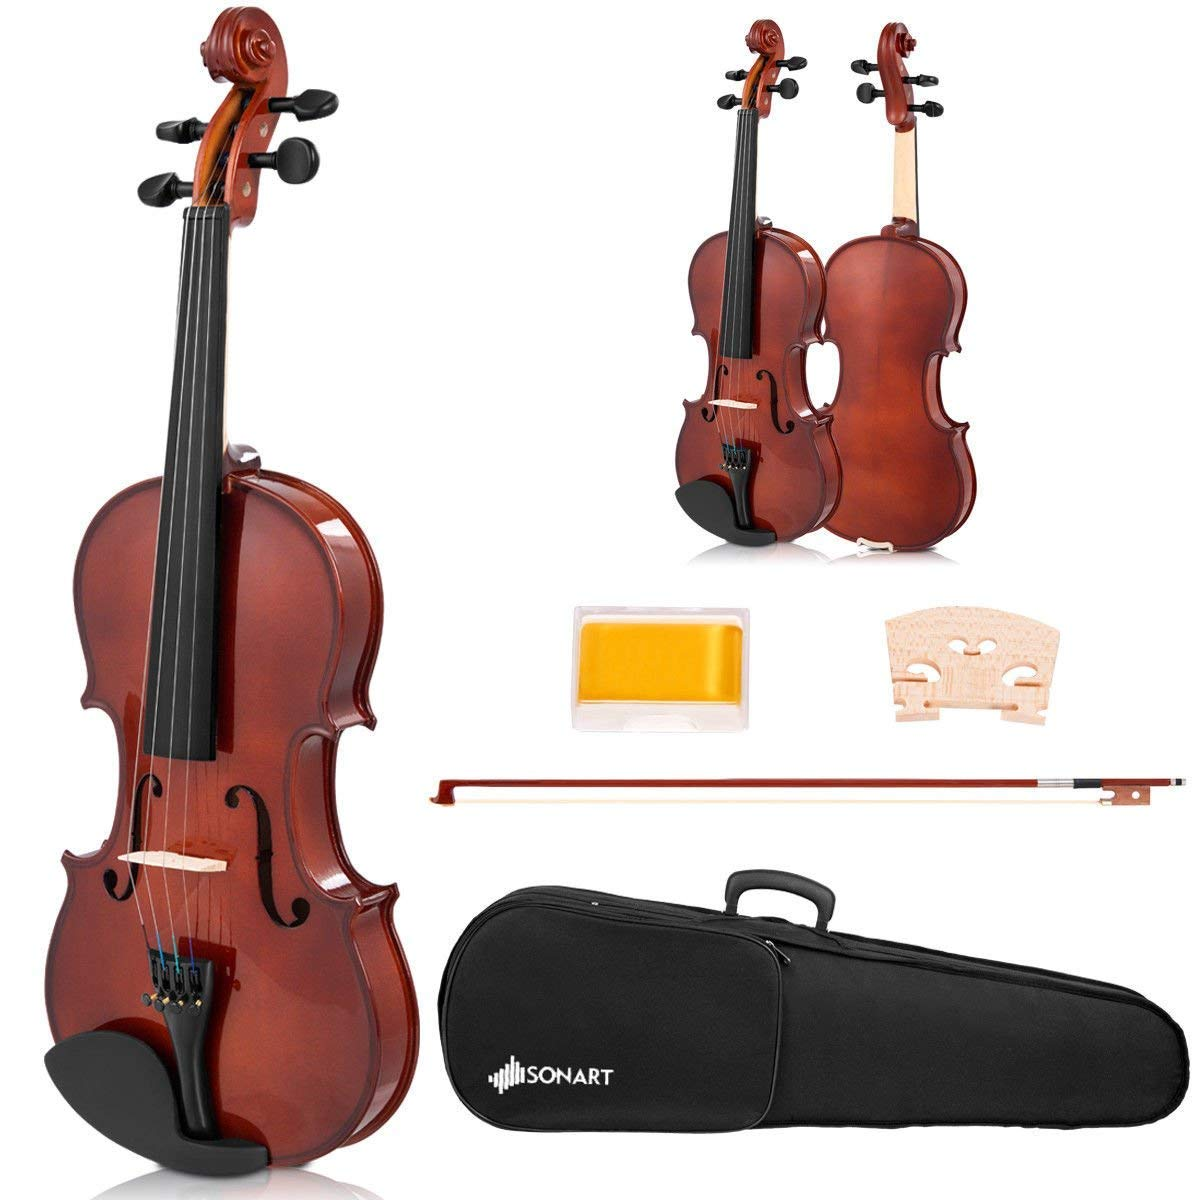 Sonart Full Size 4/4 Solid Wood Violin for Beginners, Acoustic Starter Kit with Hard Case, Rosin, Bridge, Bow, Violin Outfit Set, Gift for Kids Students by Costzon